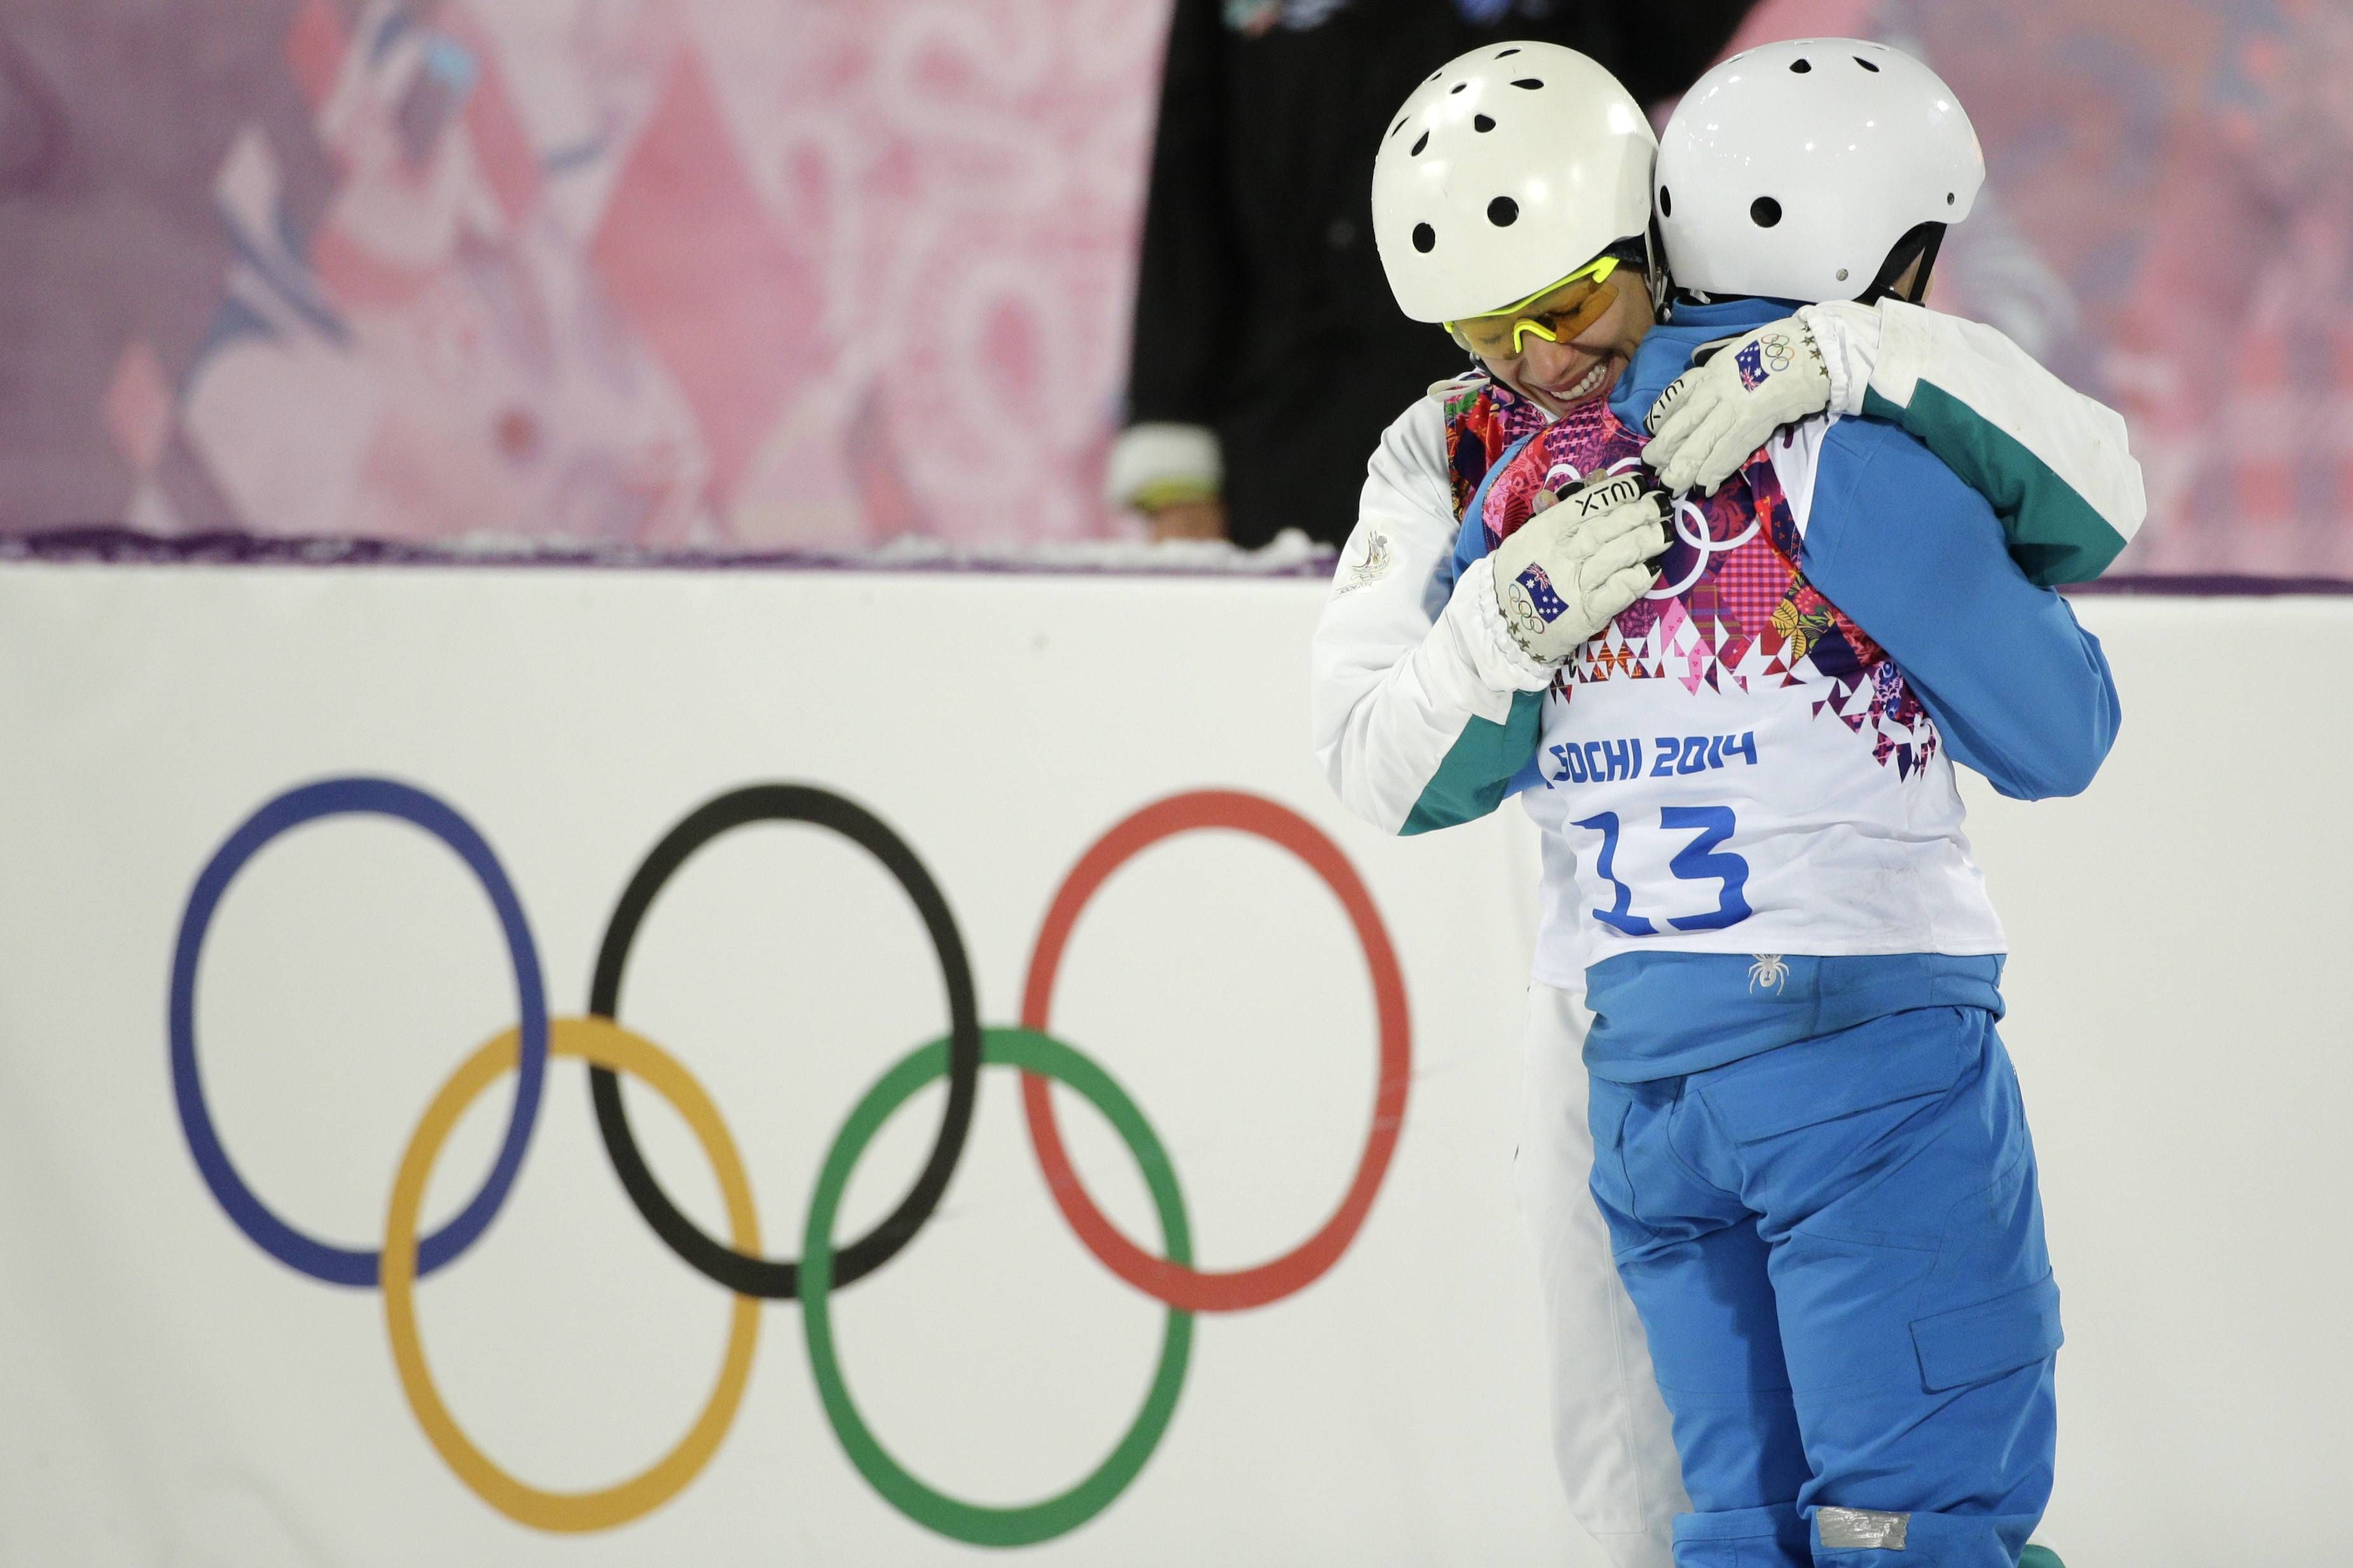 Women's freestyle skiing aerials gold medalist Alla Tsuper, of Belarus, is hugged by bronze medalist Lydia Lassila, of Australia.